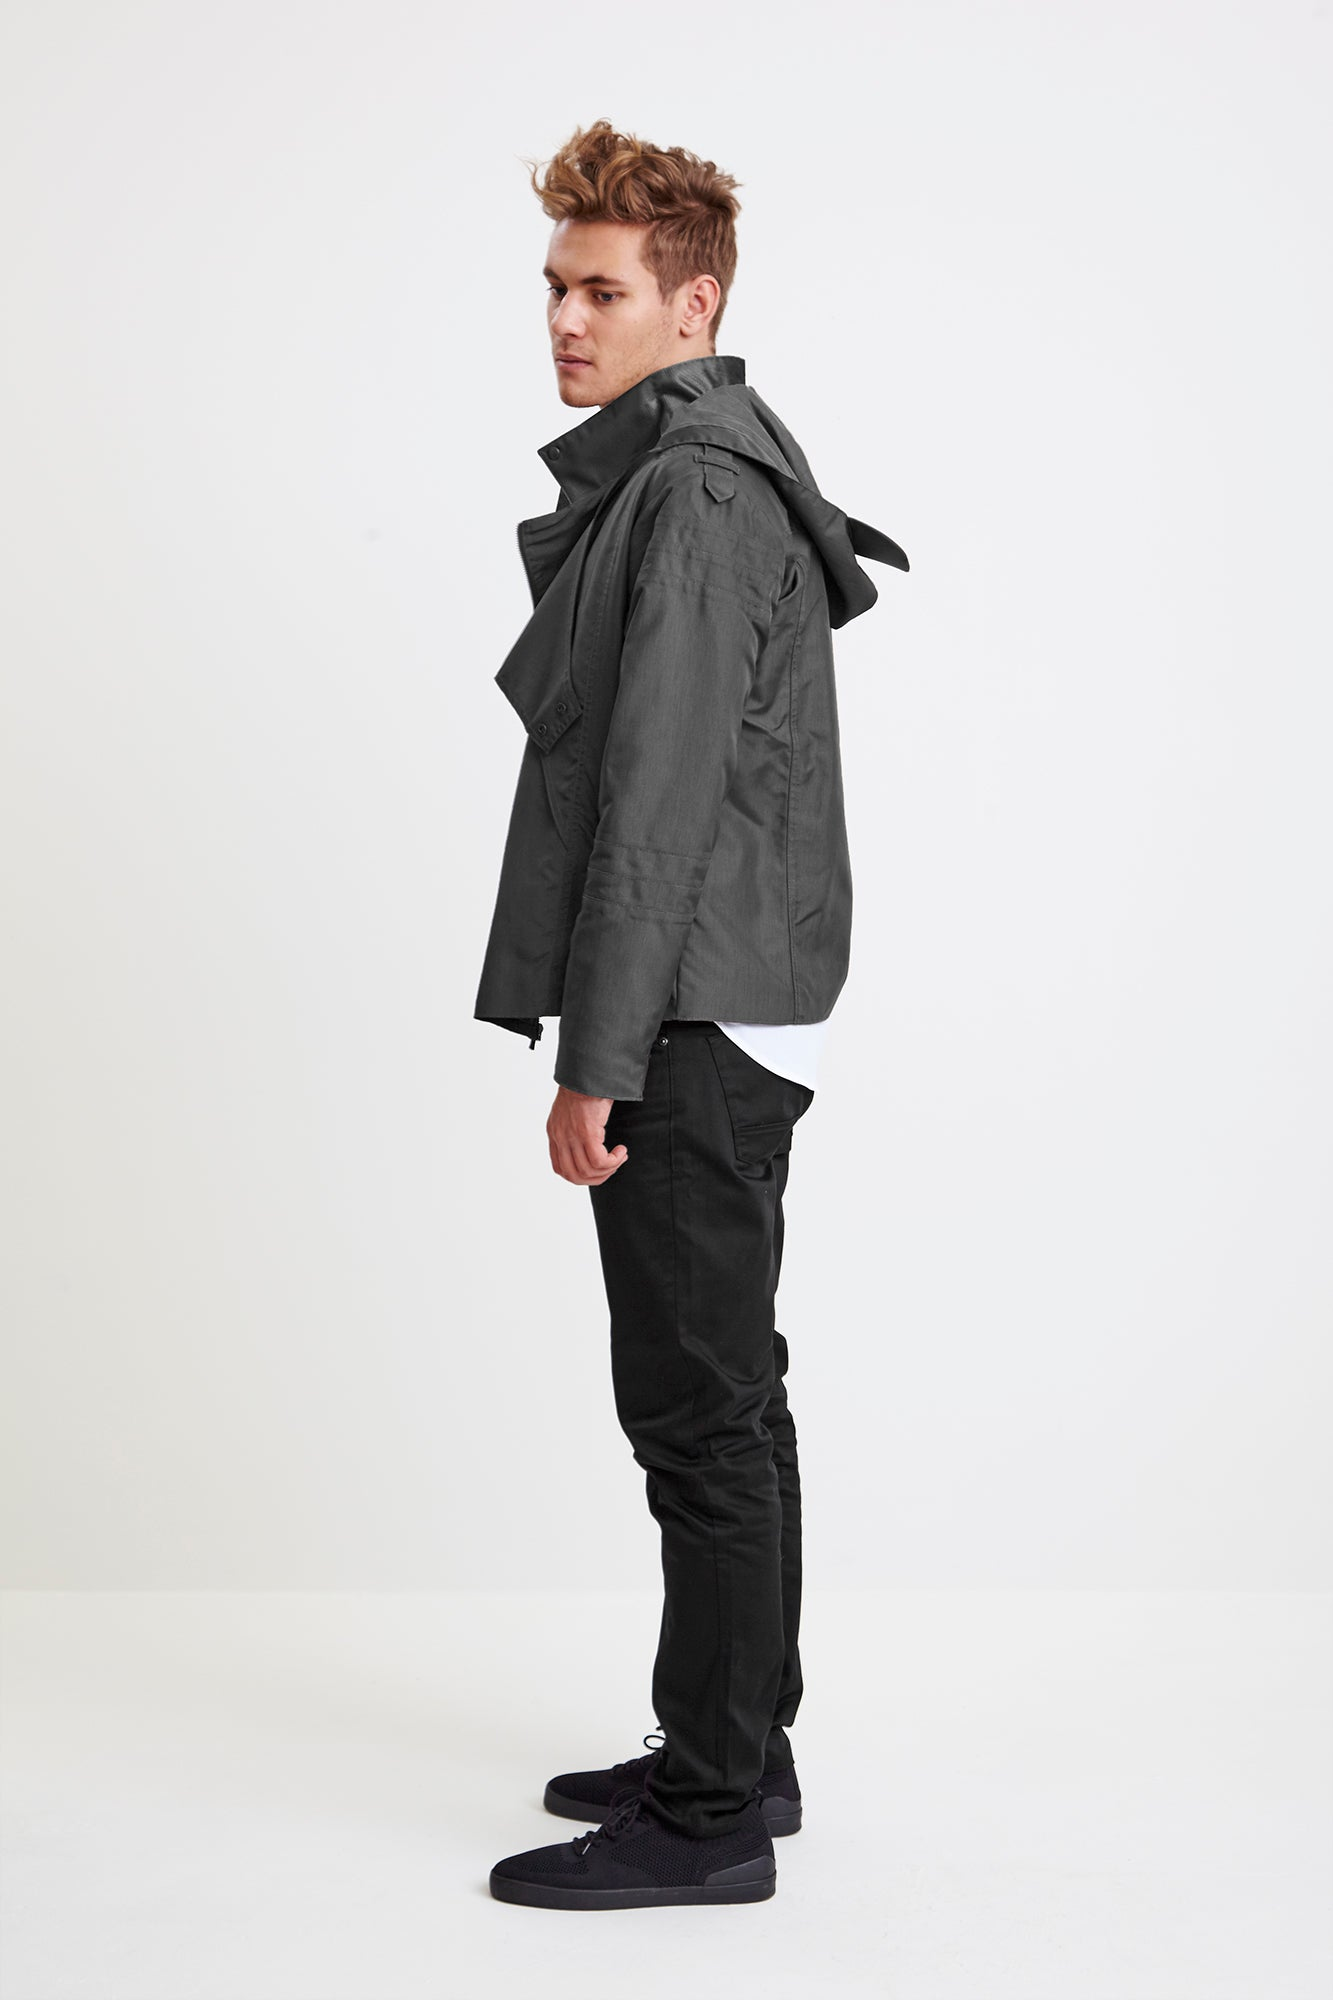 BIKER JACKET - grey raincoat for men